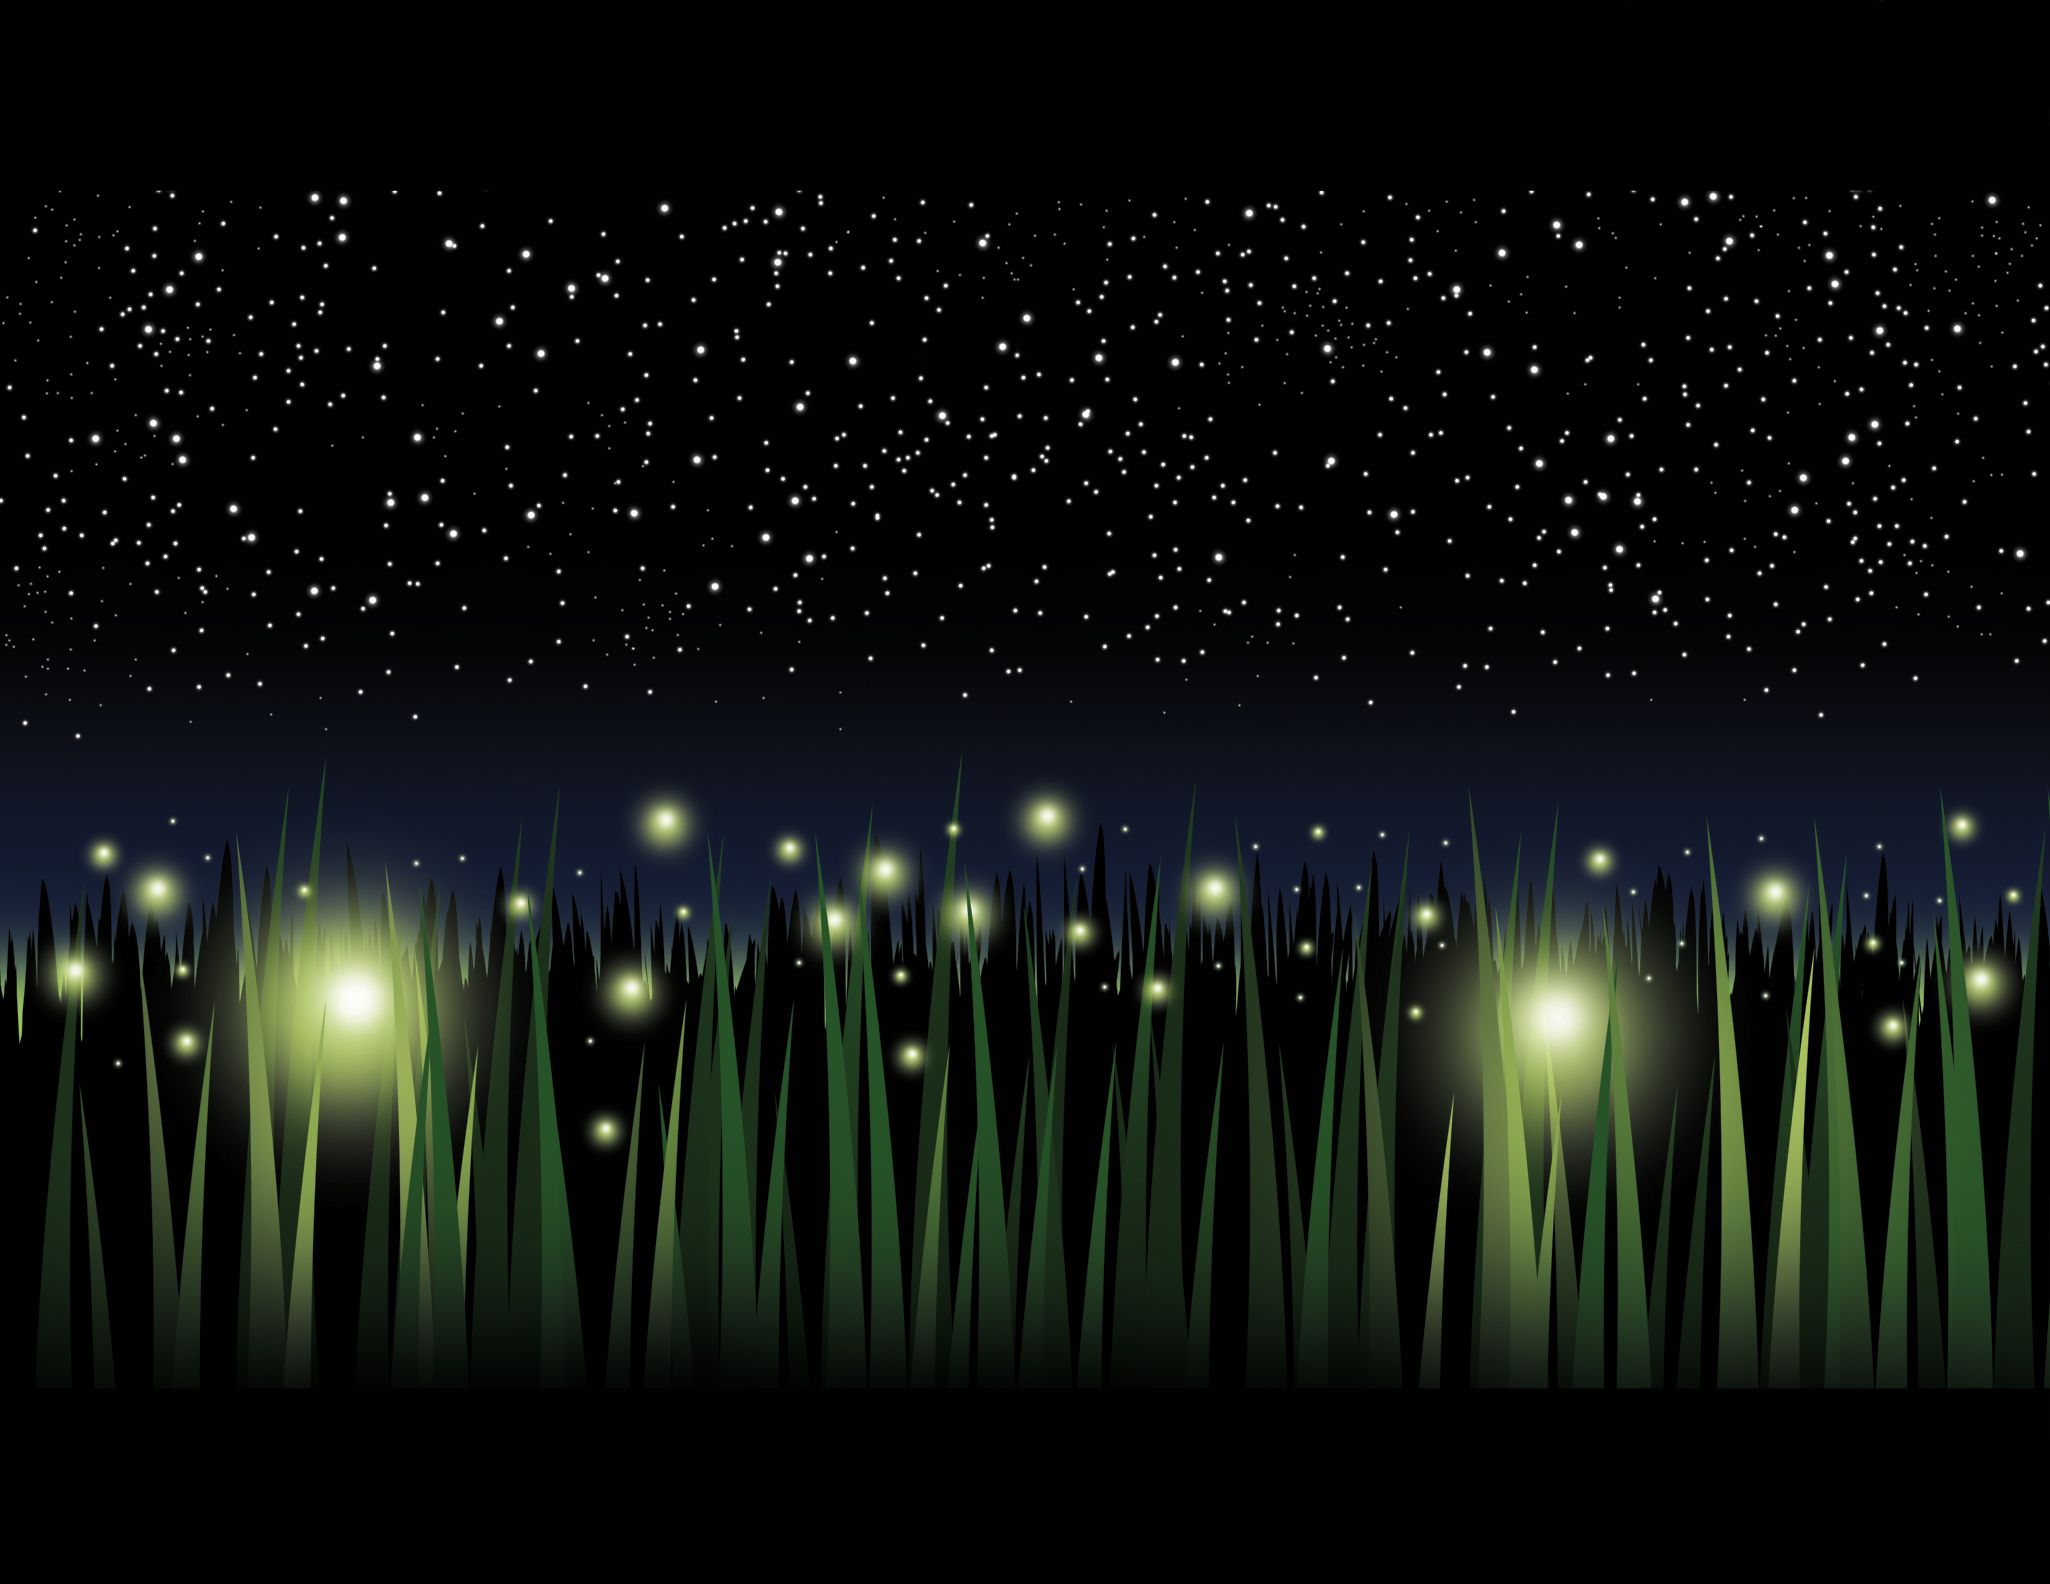 Lightning Bugs With Images Lightning Bugs And Insects Pictures